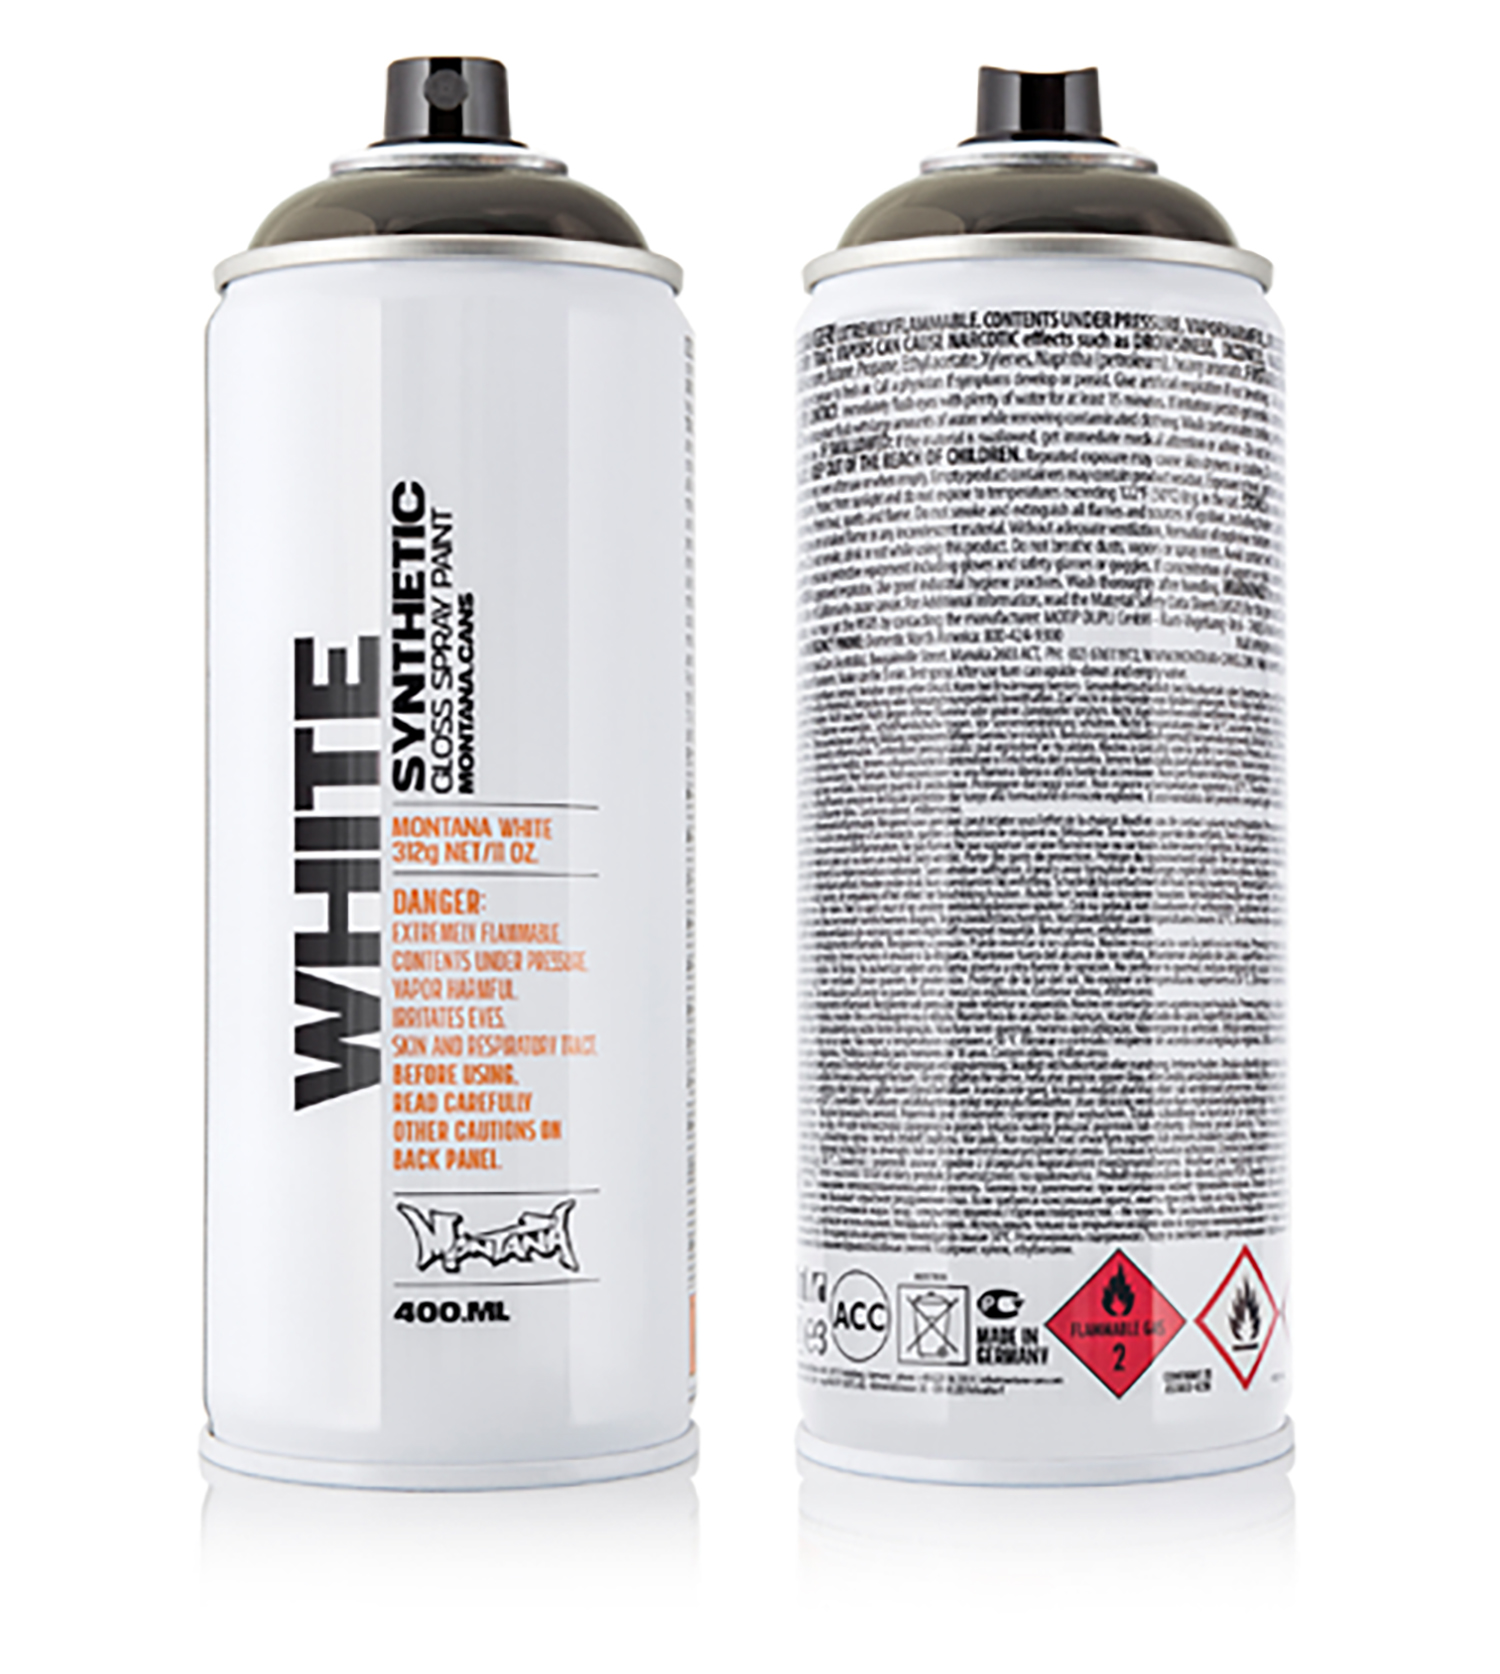 MONTANA-WHITE-SPRAY-400ML-1270